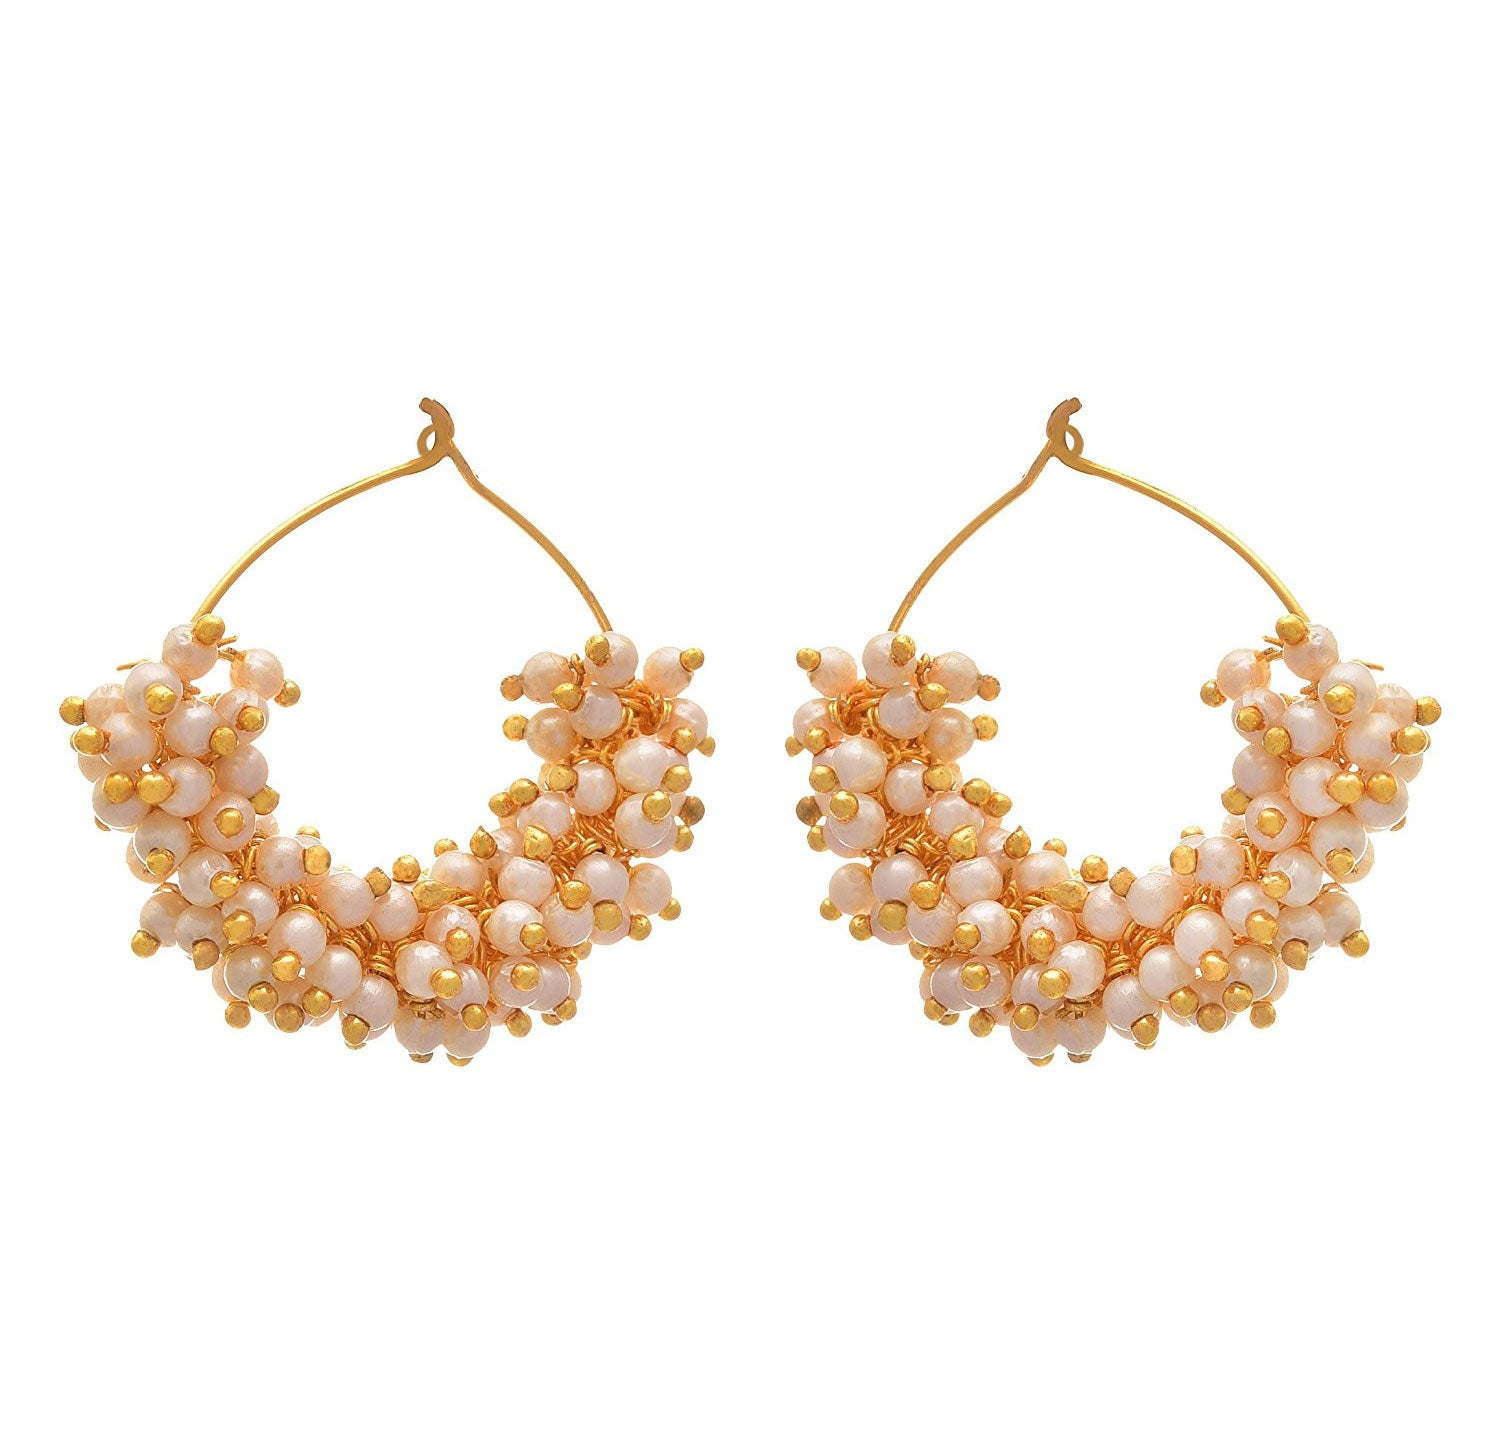 JFL - Fusion Traditional Ethnic One Gram Gold Plated Pearl Designer Bali Earrings Women and Girls.